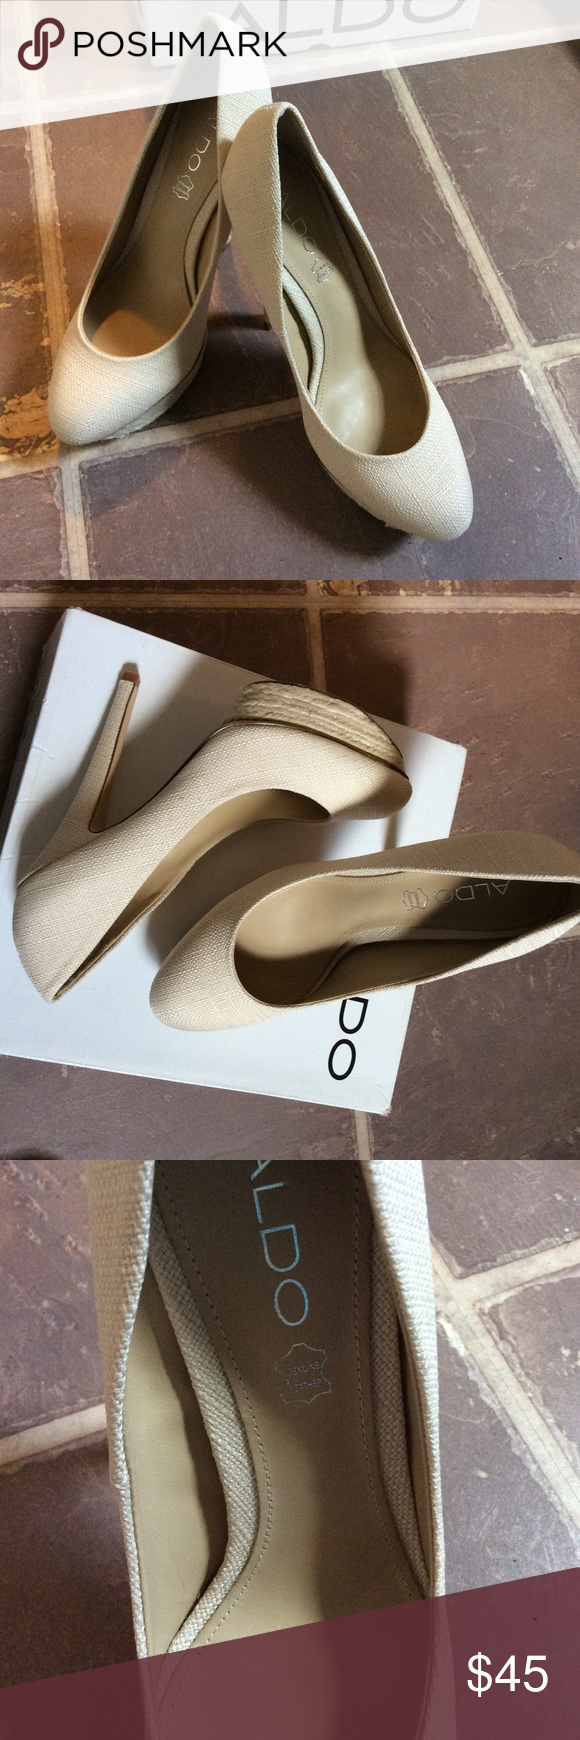 Aldo Karter platform pumps Sexy, brand new, never worn.  Aldo 38 which is 7.5 according to Aldo's size chart.  Comes with box.  Reasonable offers always welcome, not interested in trading. Aldo Shoes Heels